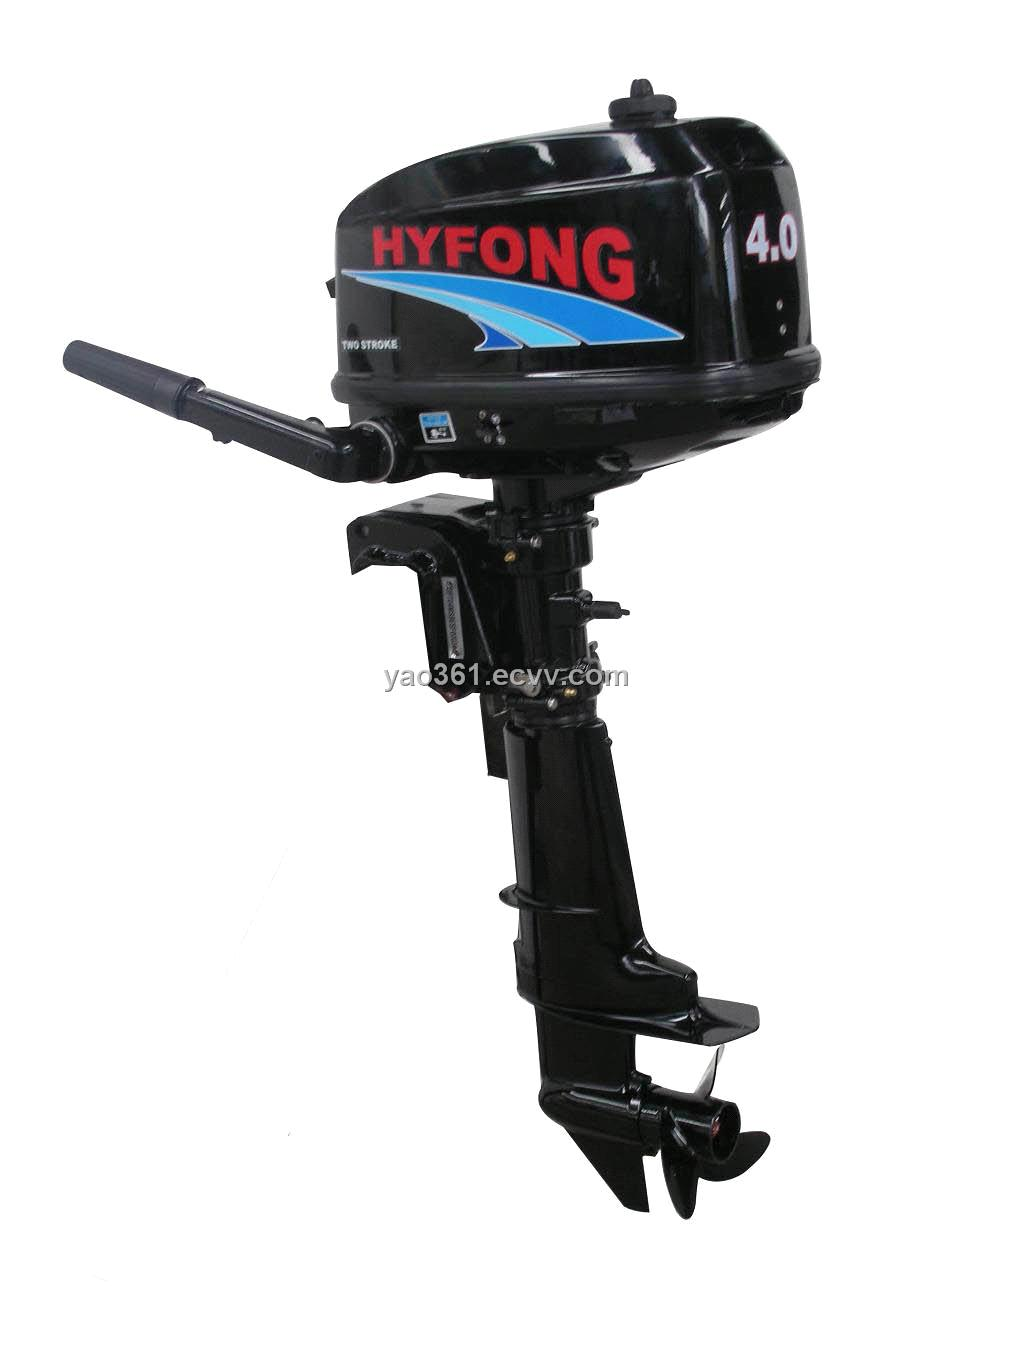 Chinese Outboard Motors : Hyfong outboard motor purchasing souring agent ecvv